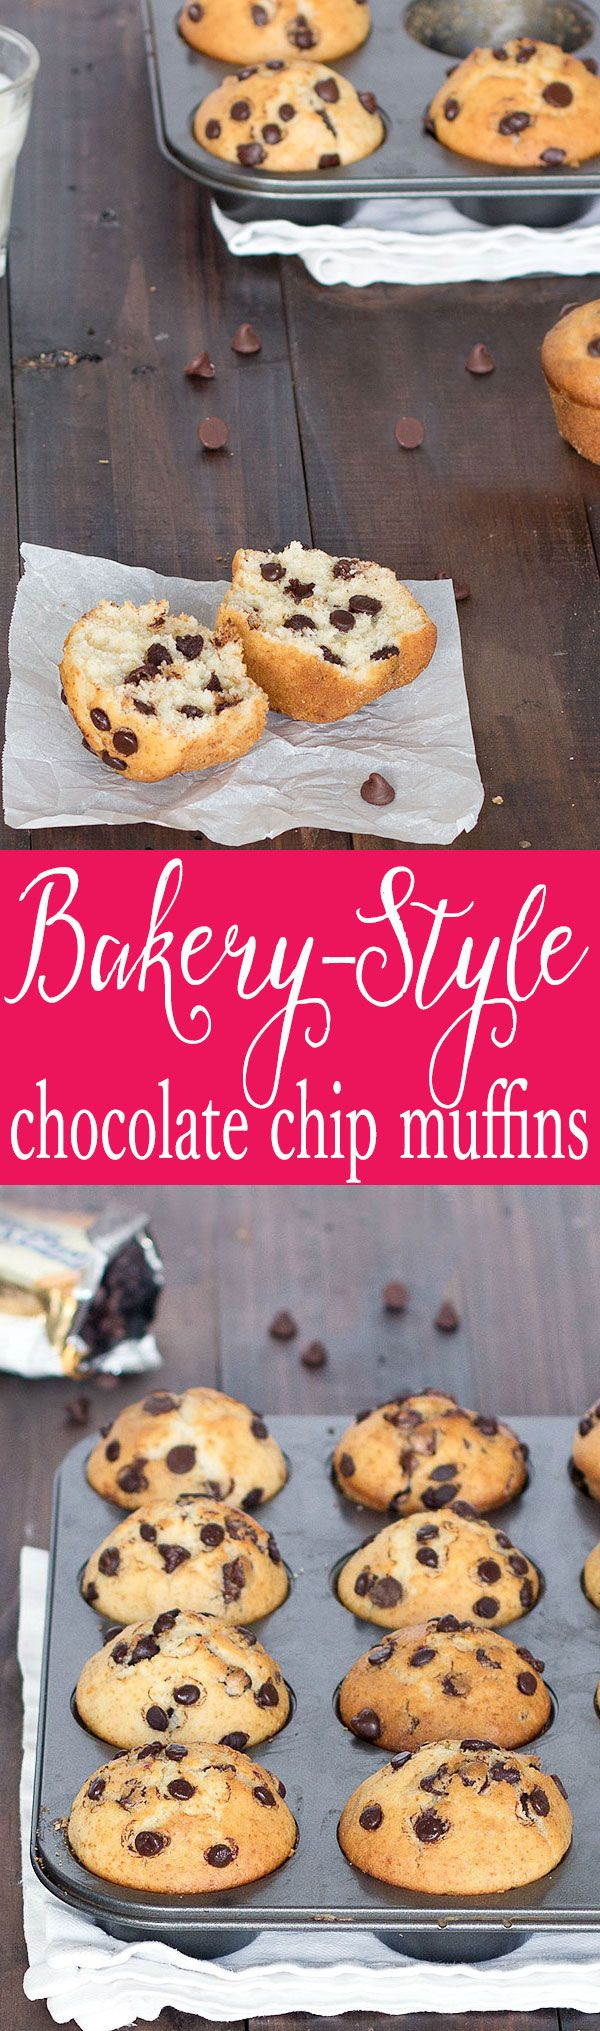 Bakery Style Chocolate Chip Muffins - They're soft, fluffy, and packed with chocolate chips! The best chocolate chip muffins!